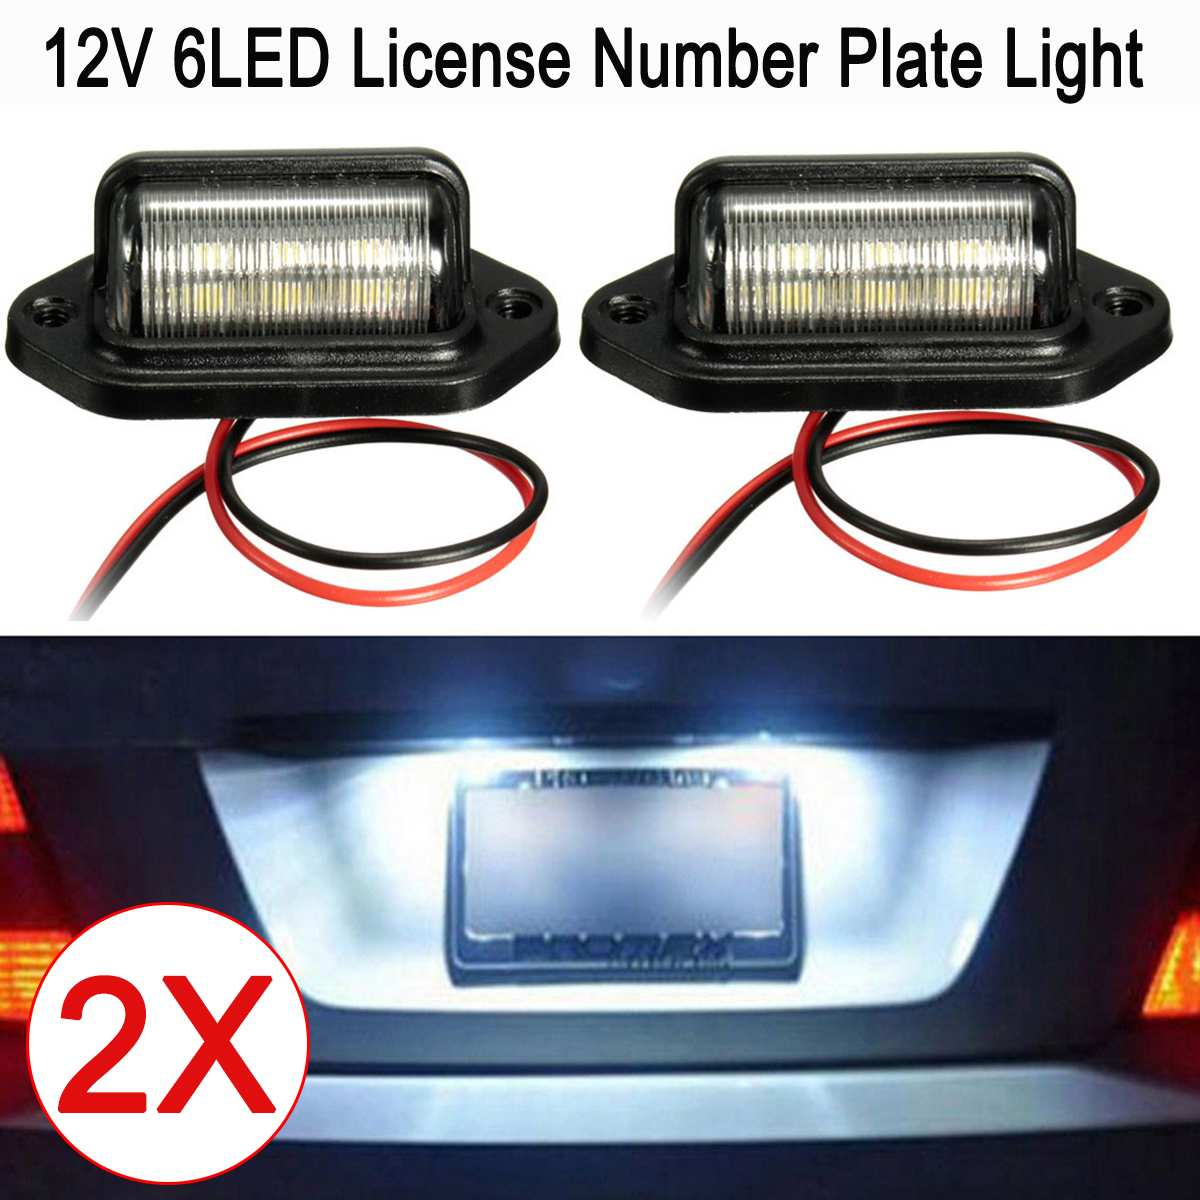 2Pcs 12V LED Number License Plate Light for Car Boats Motorcycle Automotive Aircraft